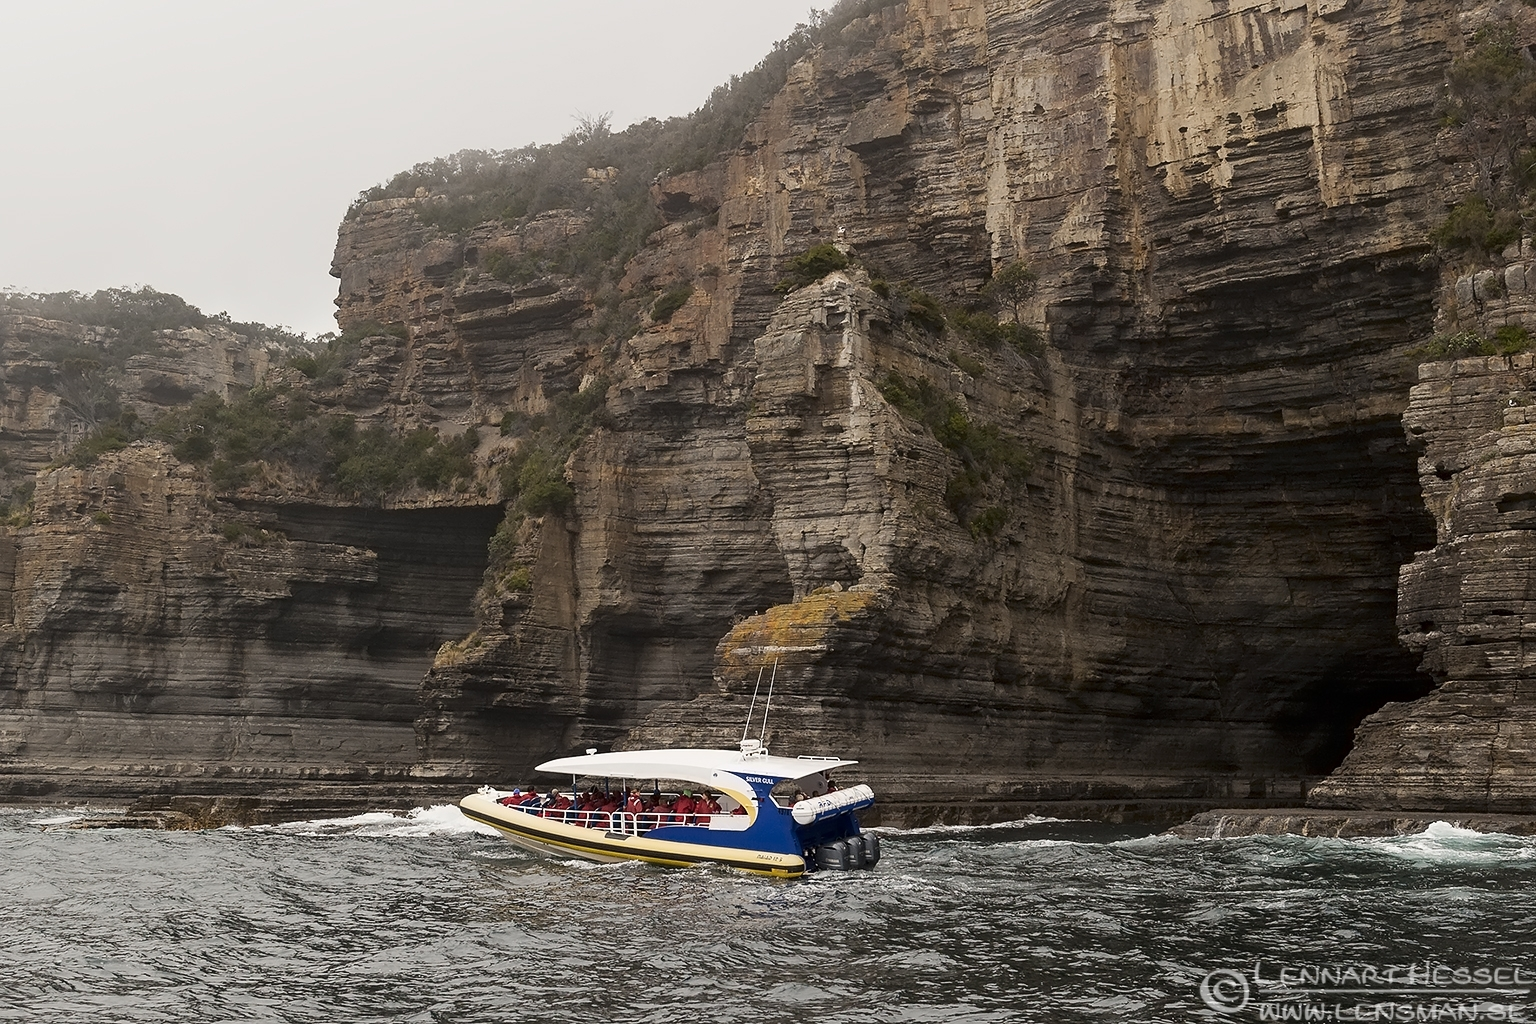 Boat and cliff side Tasmania